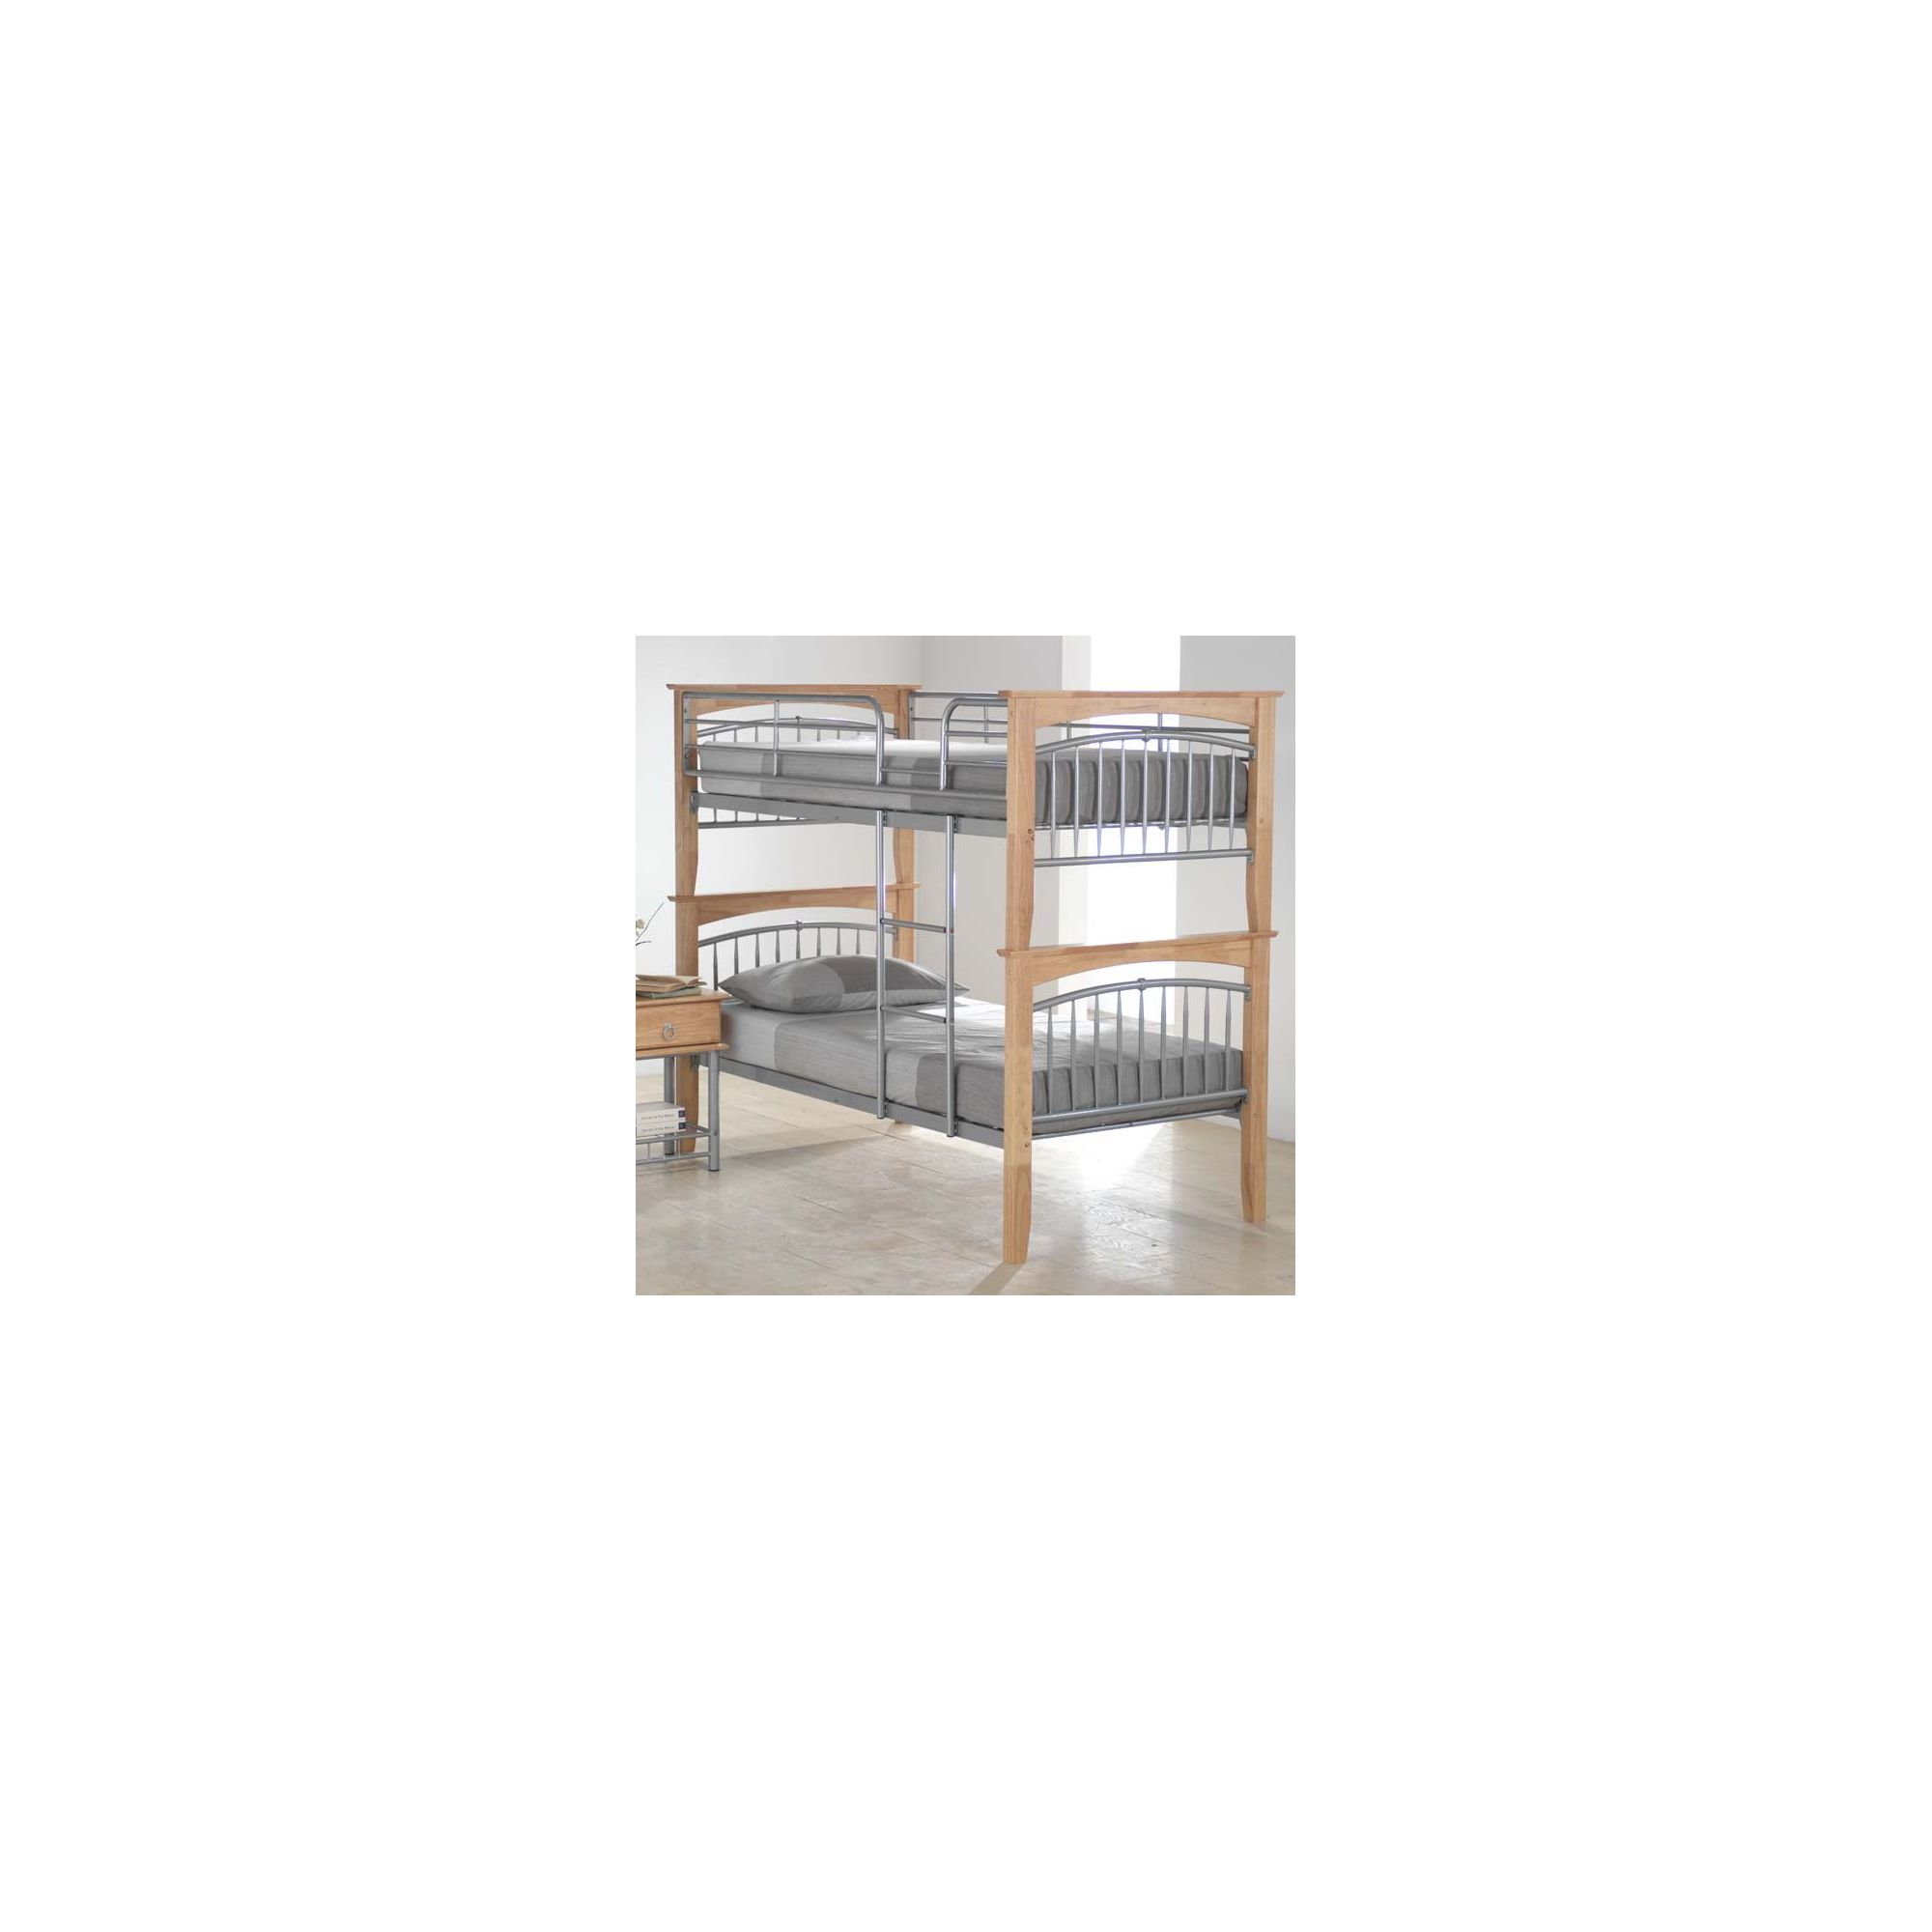 Ideal Furniture Euro Bunk Bed - Wenge and Silver at Tesco Direct